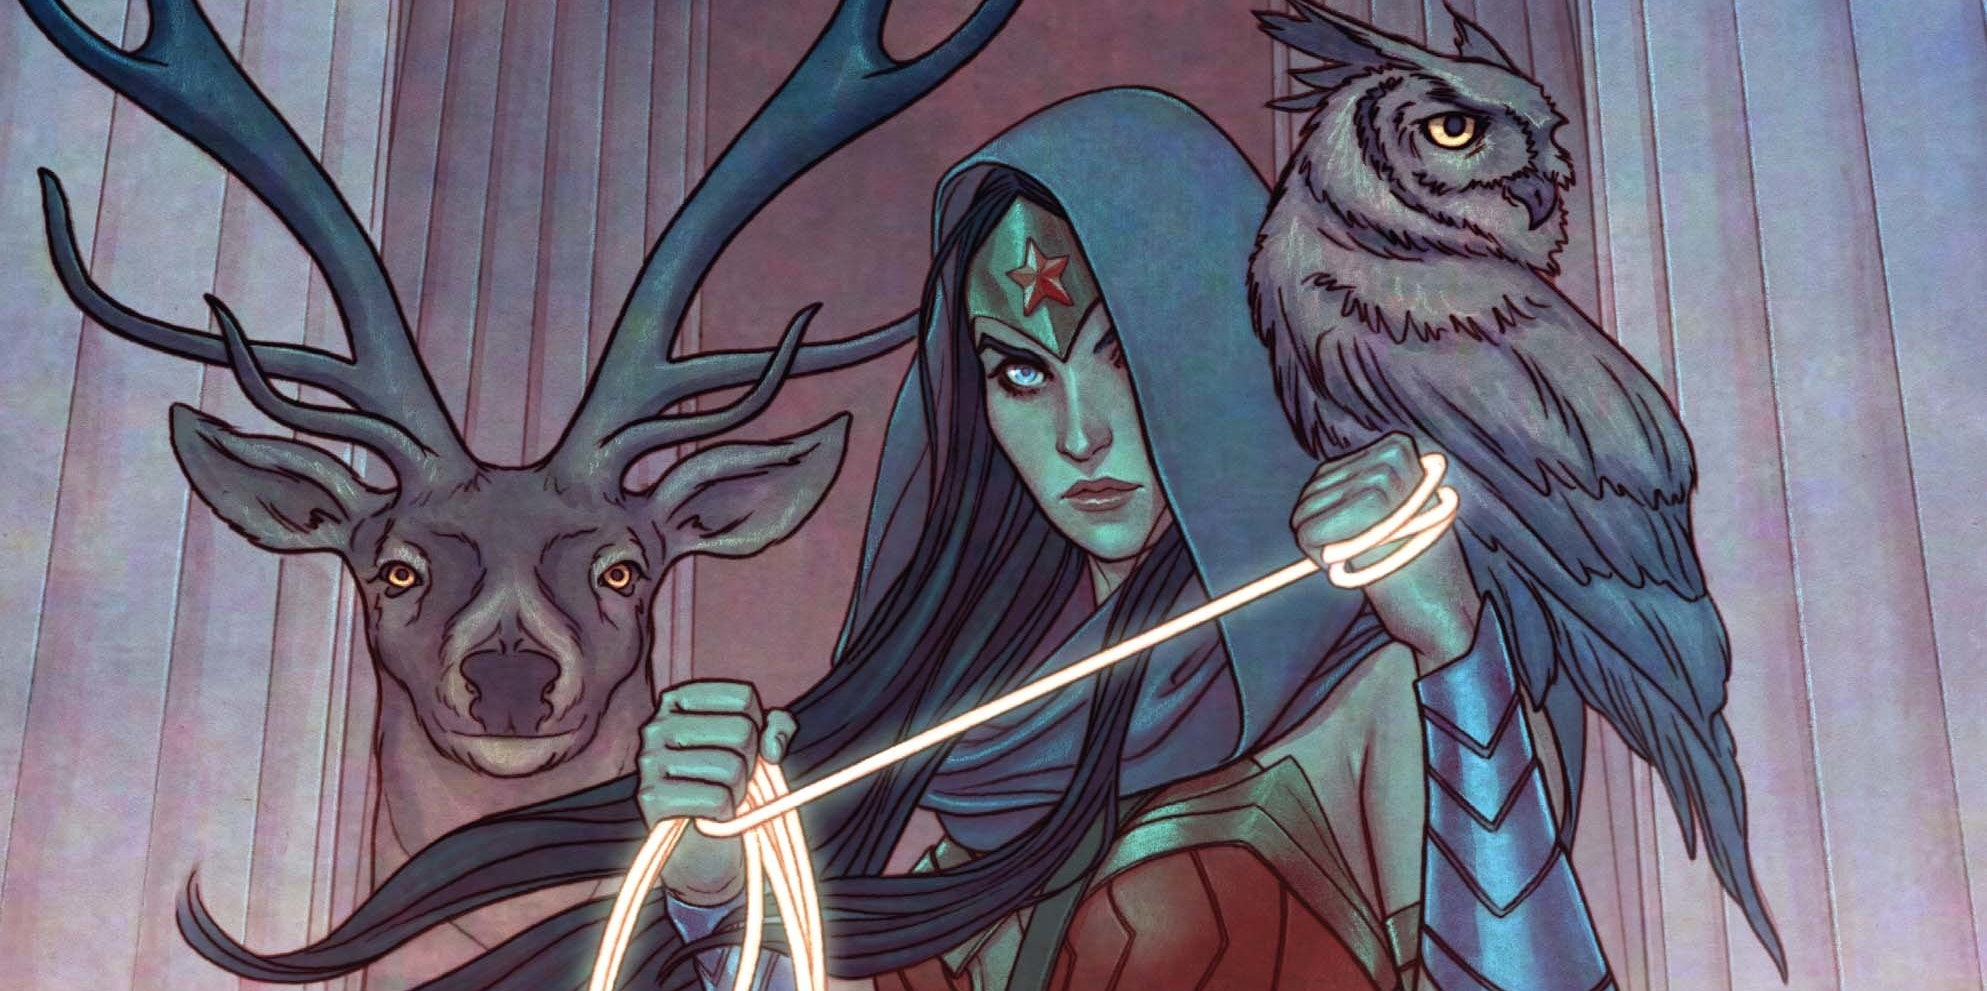 Variant Cover for DC Comics Wonder Woman Rebirth #8 by Jenny Frison